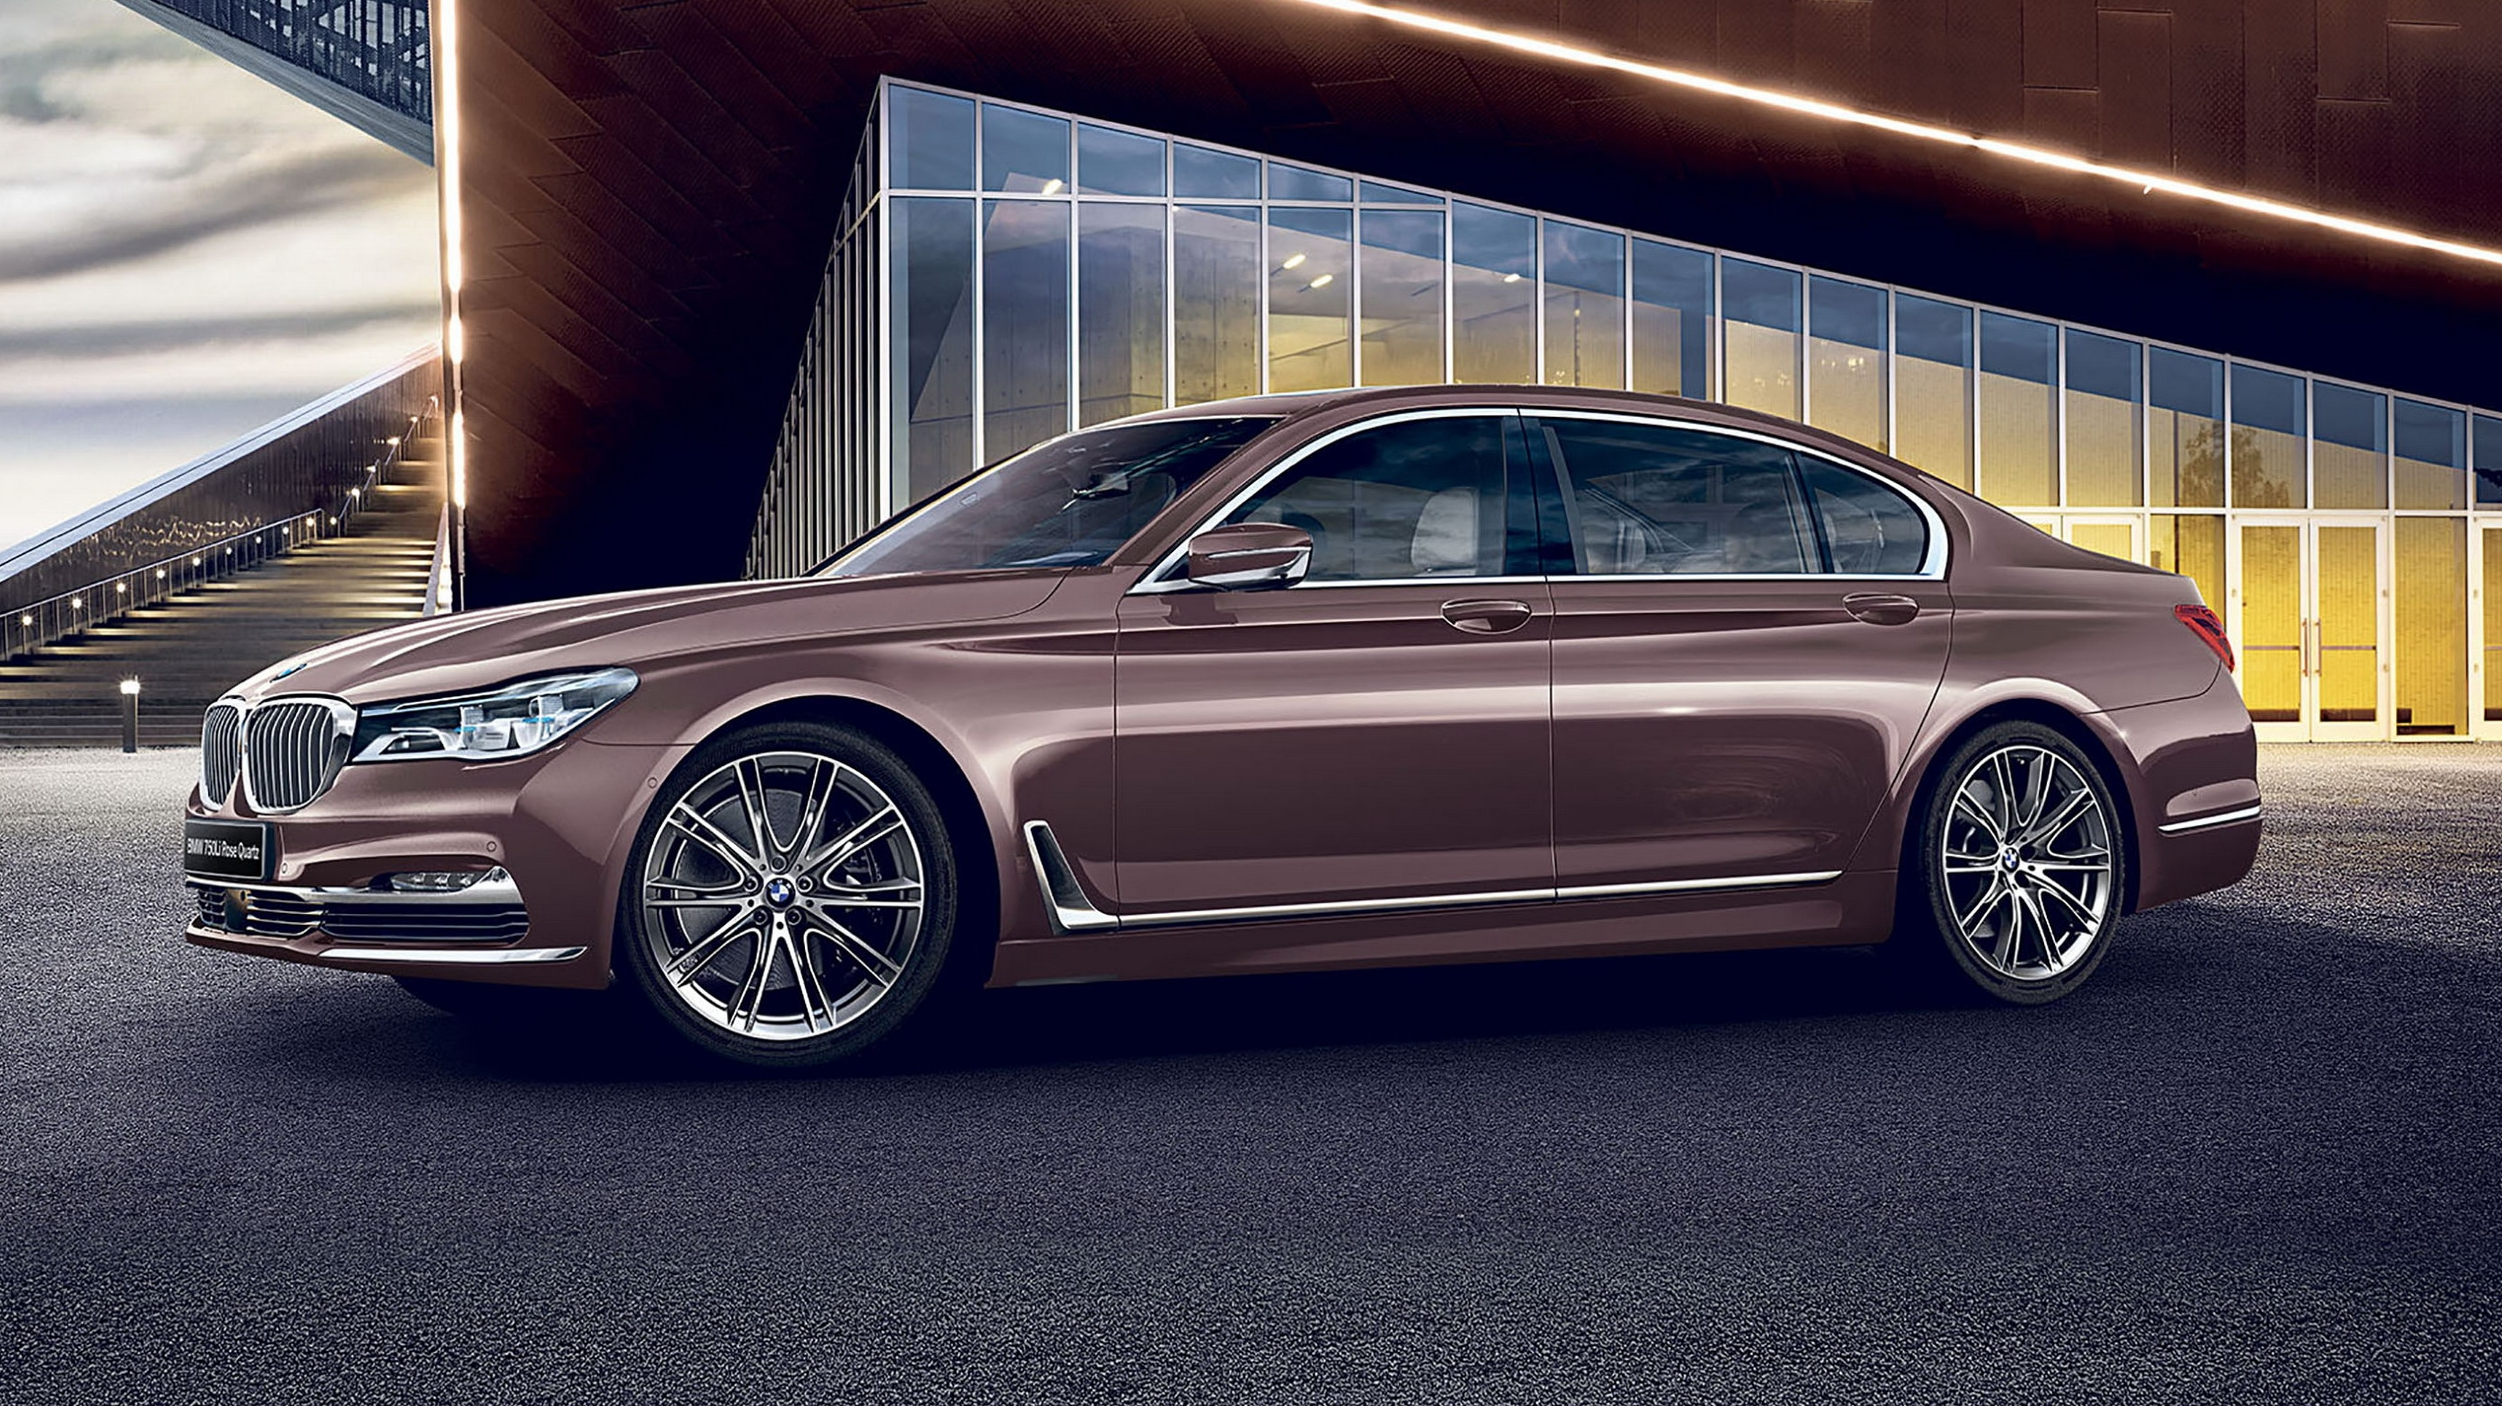 2017 bmw 7 series rose quartz edition review top speed. Black Bedroom Furniture Sets. Home Design Ideas